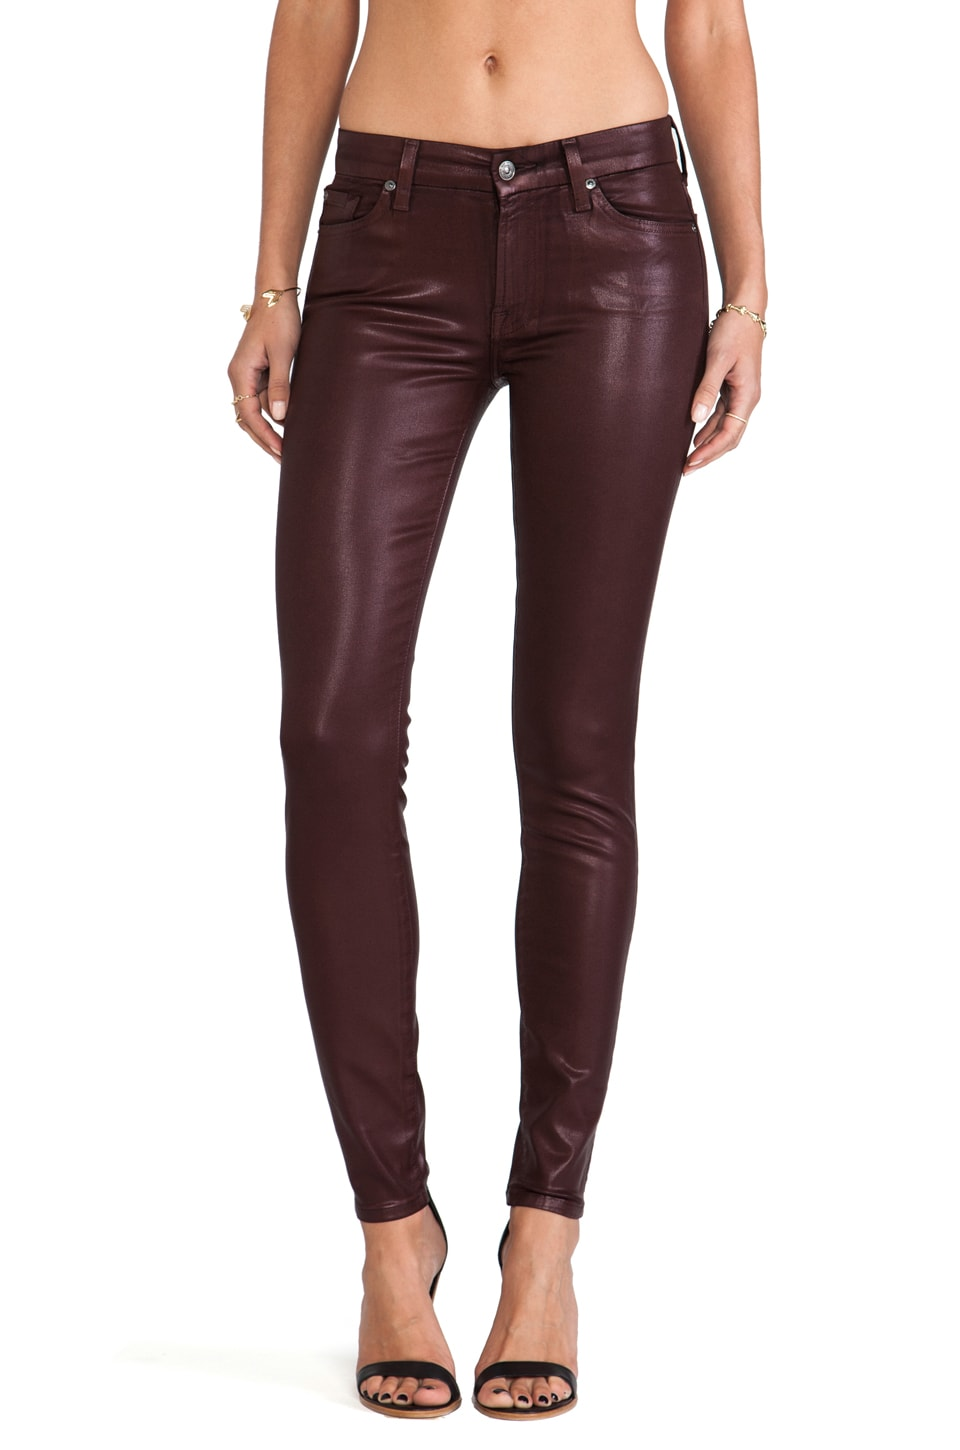 7 For All Mankind The High Gloss Skinny in Garnet